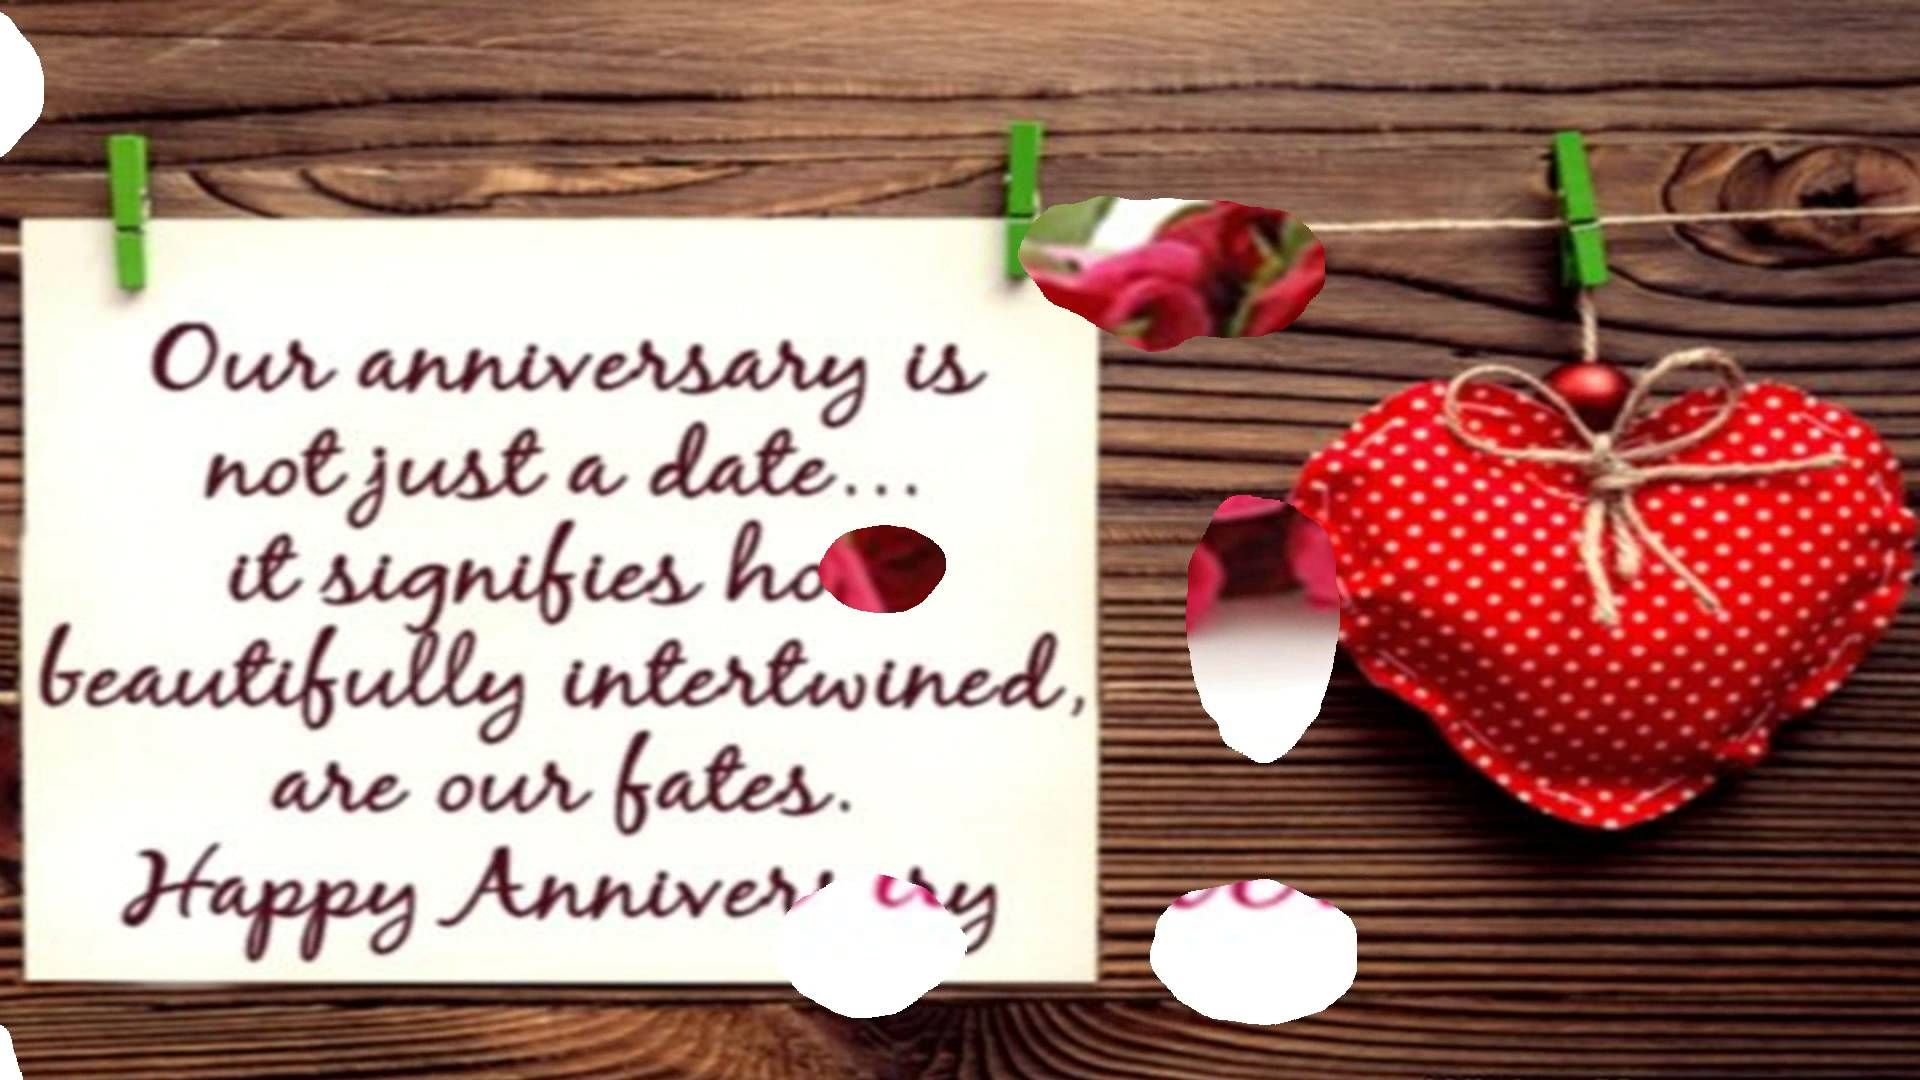 Anniversary messages for husband from wife ~ Happy anniversary wishes for couple mother s day activities